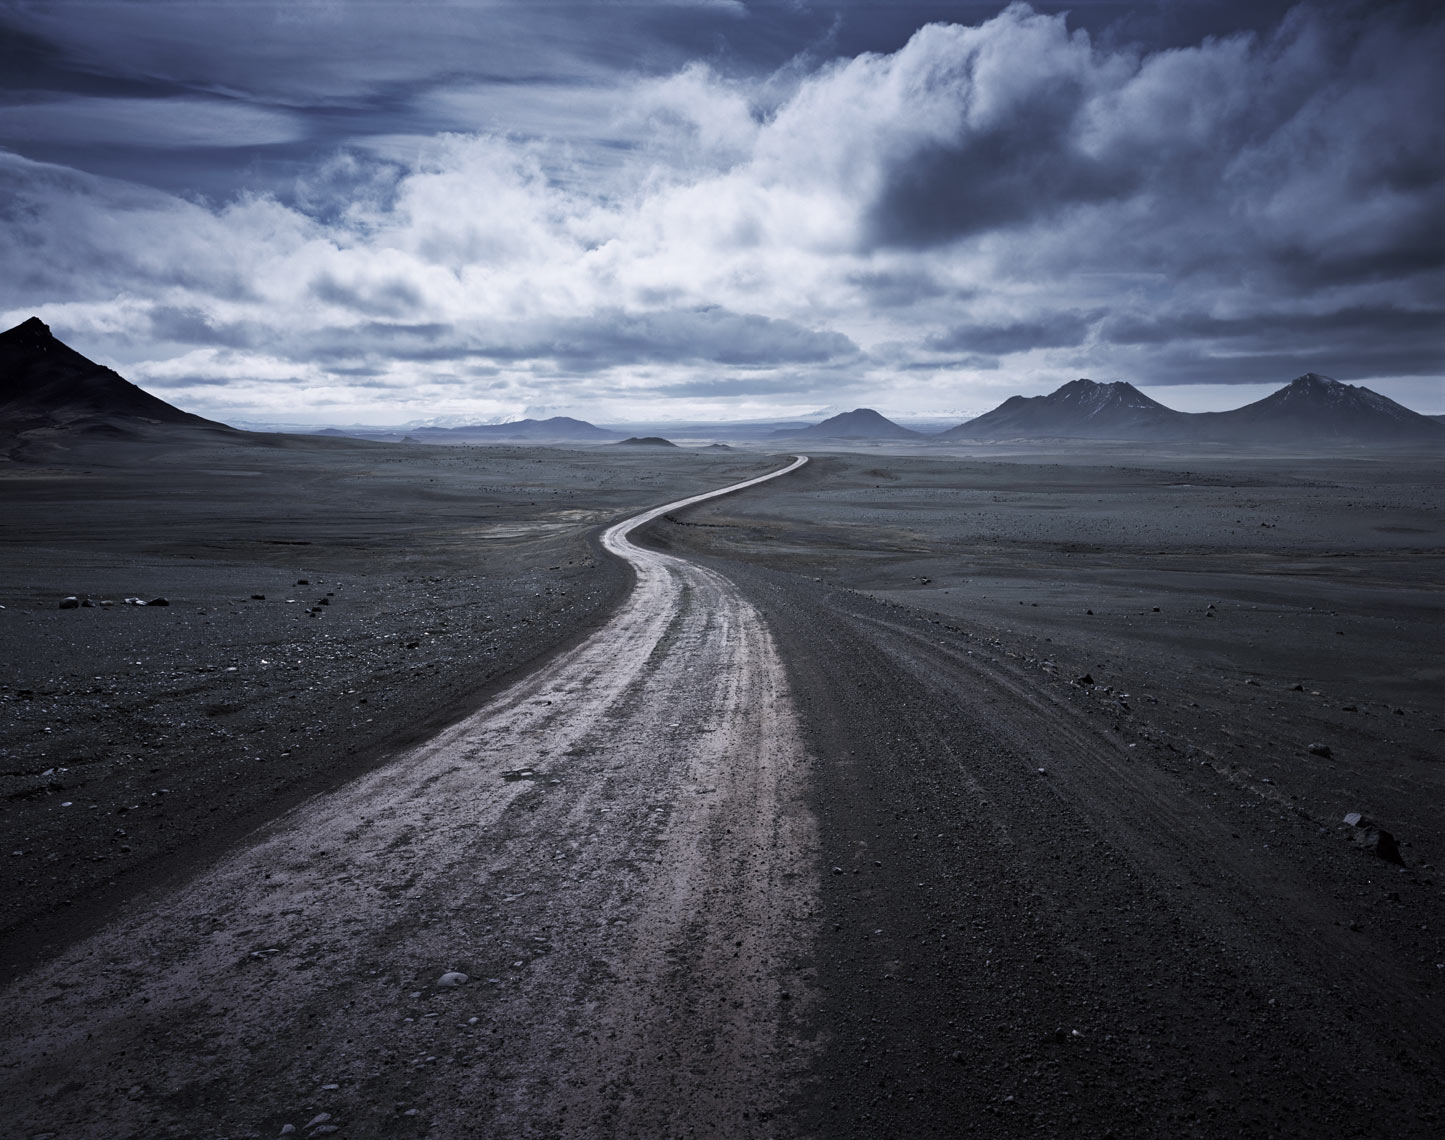 032 JA Snaking road through barren landscape